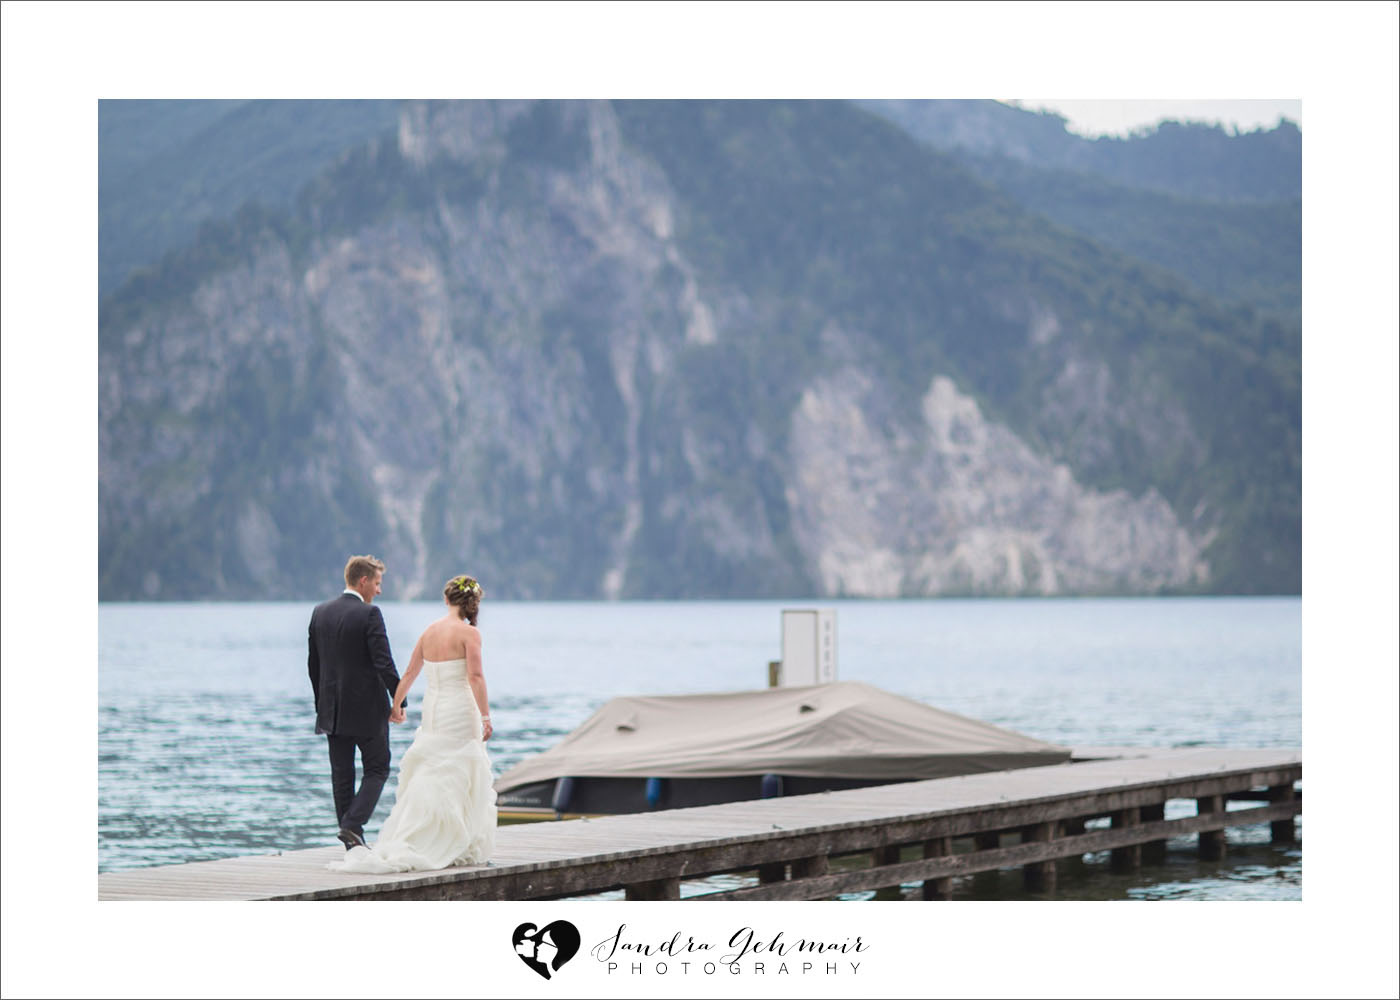 047_heiraten_am_see_spitzvilla_sandra_gehmair